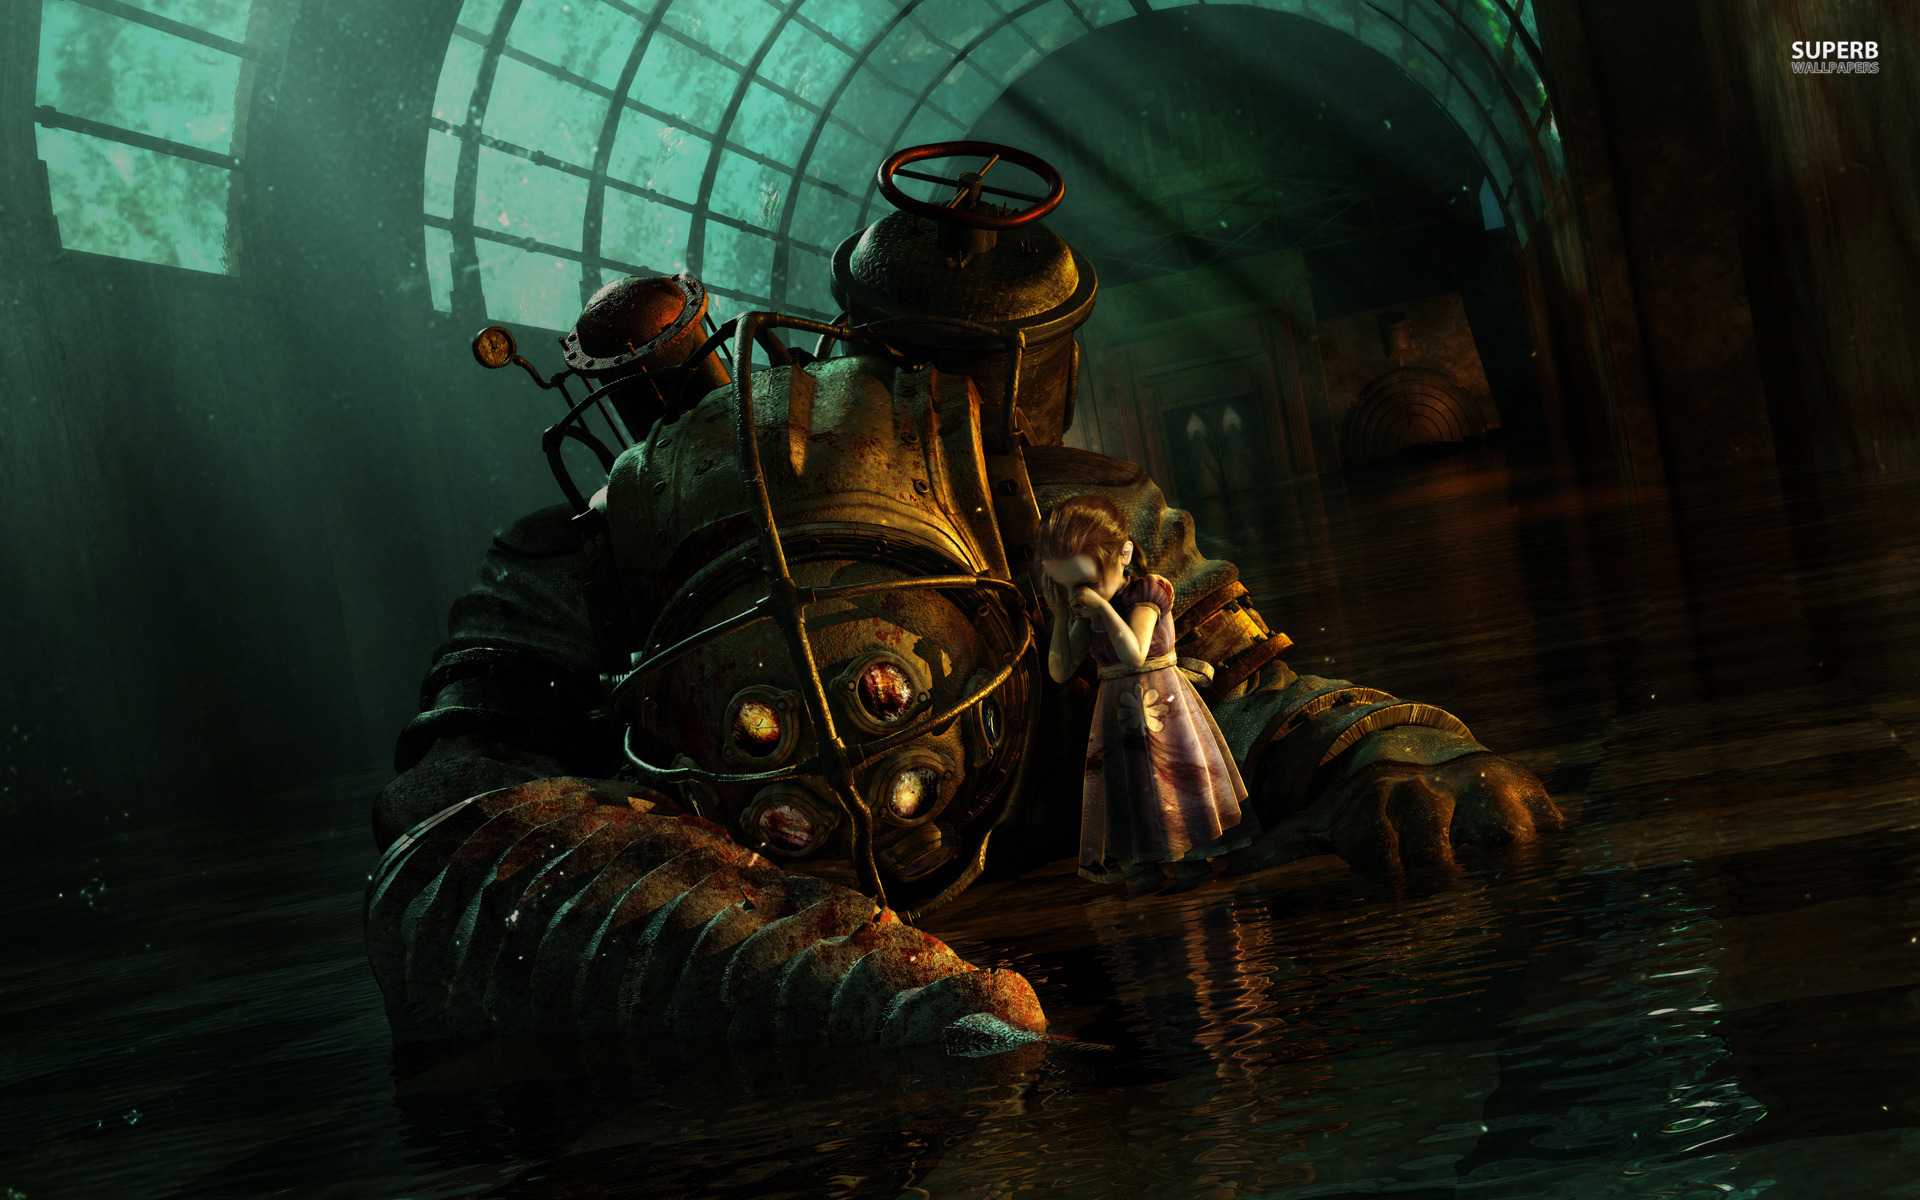 Big Daddy and Little Sister - BioShock wallpaper 1920x1200